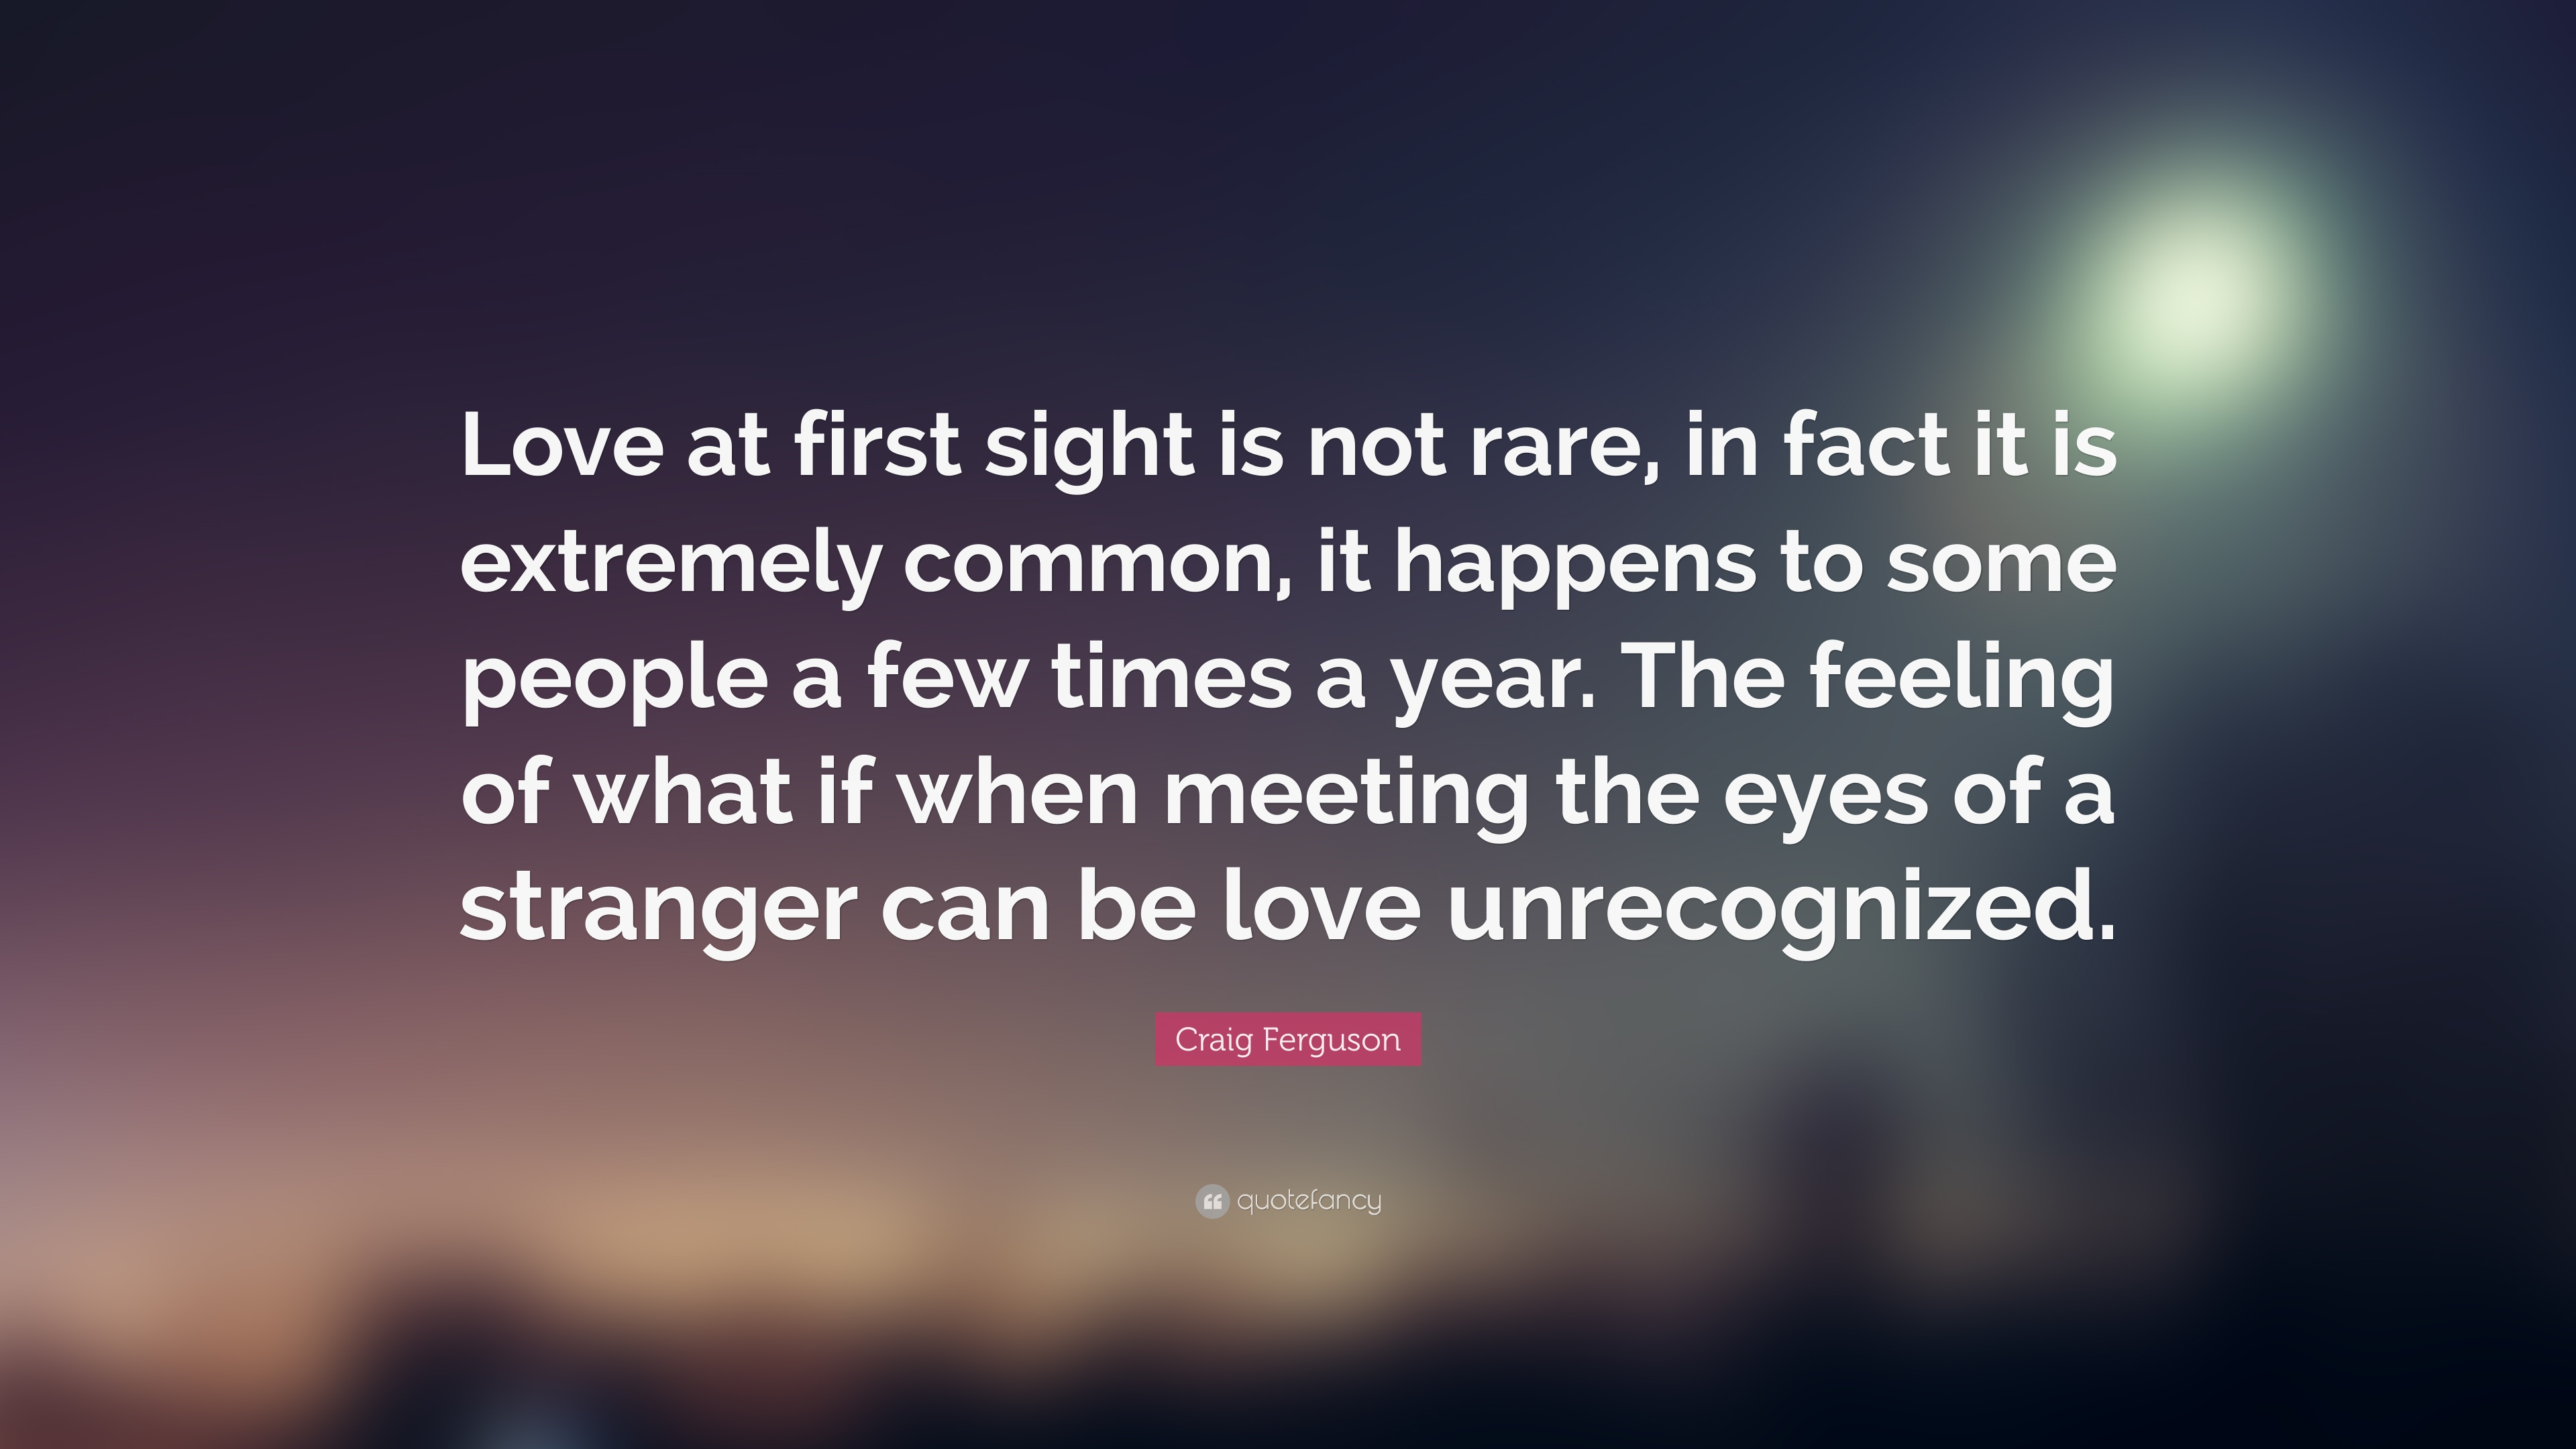 Famous Quotes About Love Famous Quotes On Love At First Sight  Page 6  The Best Love Quotes